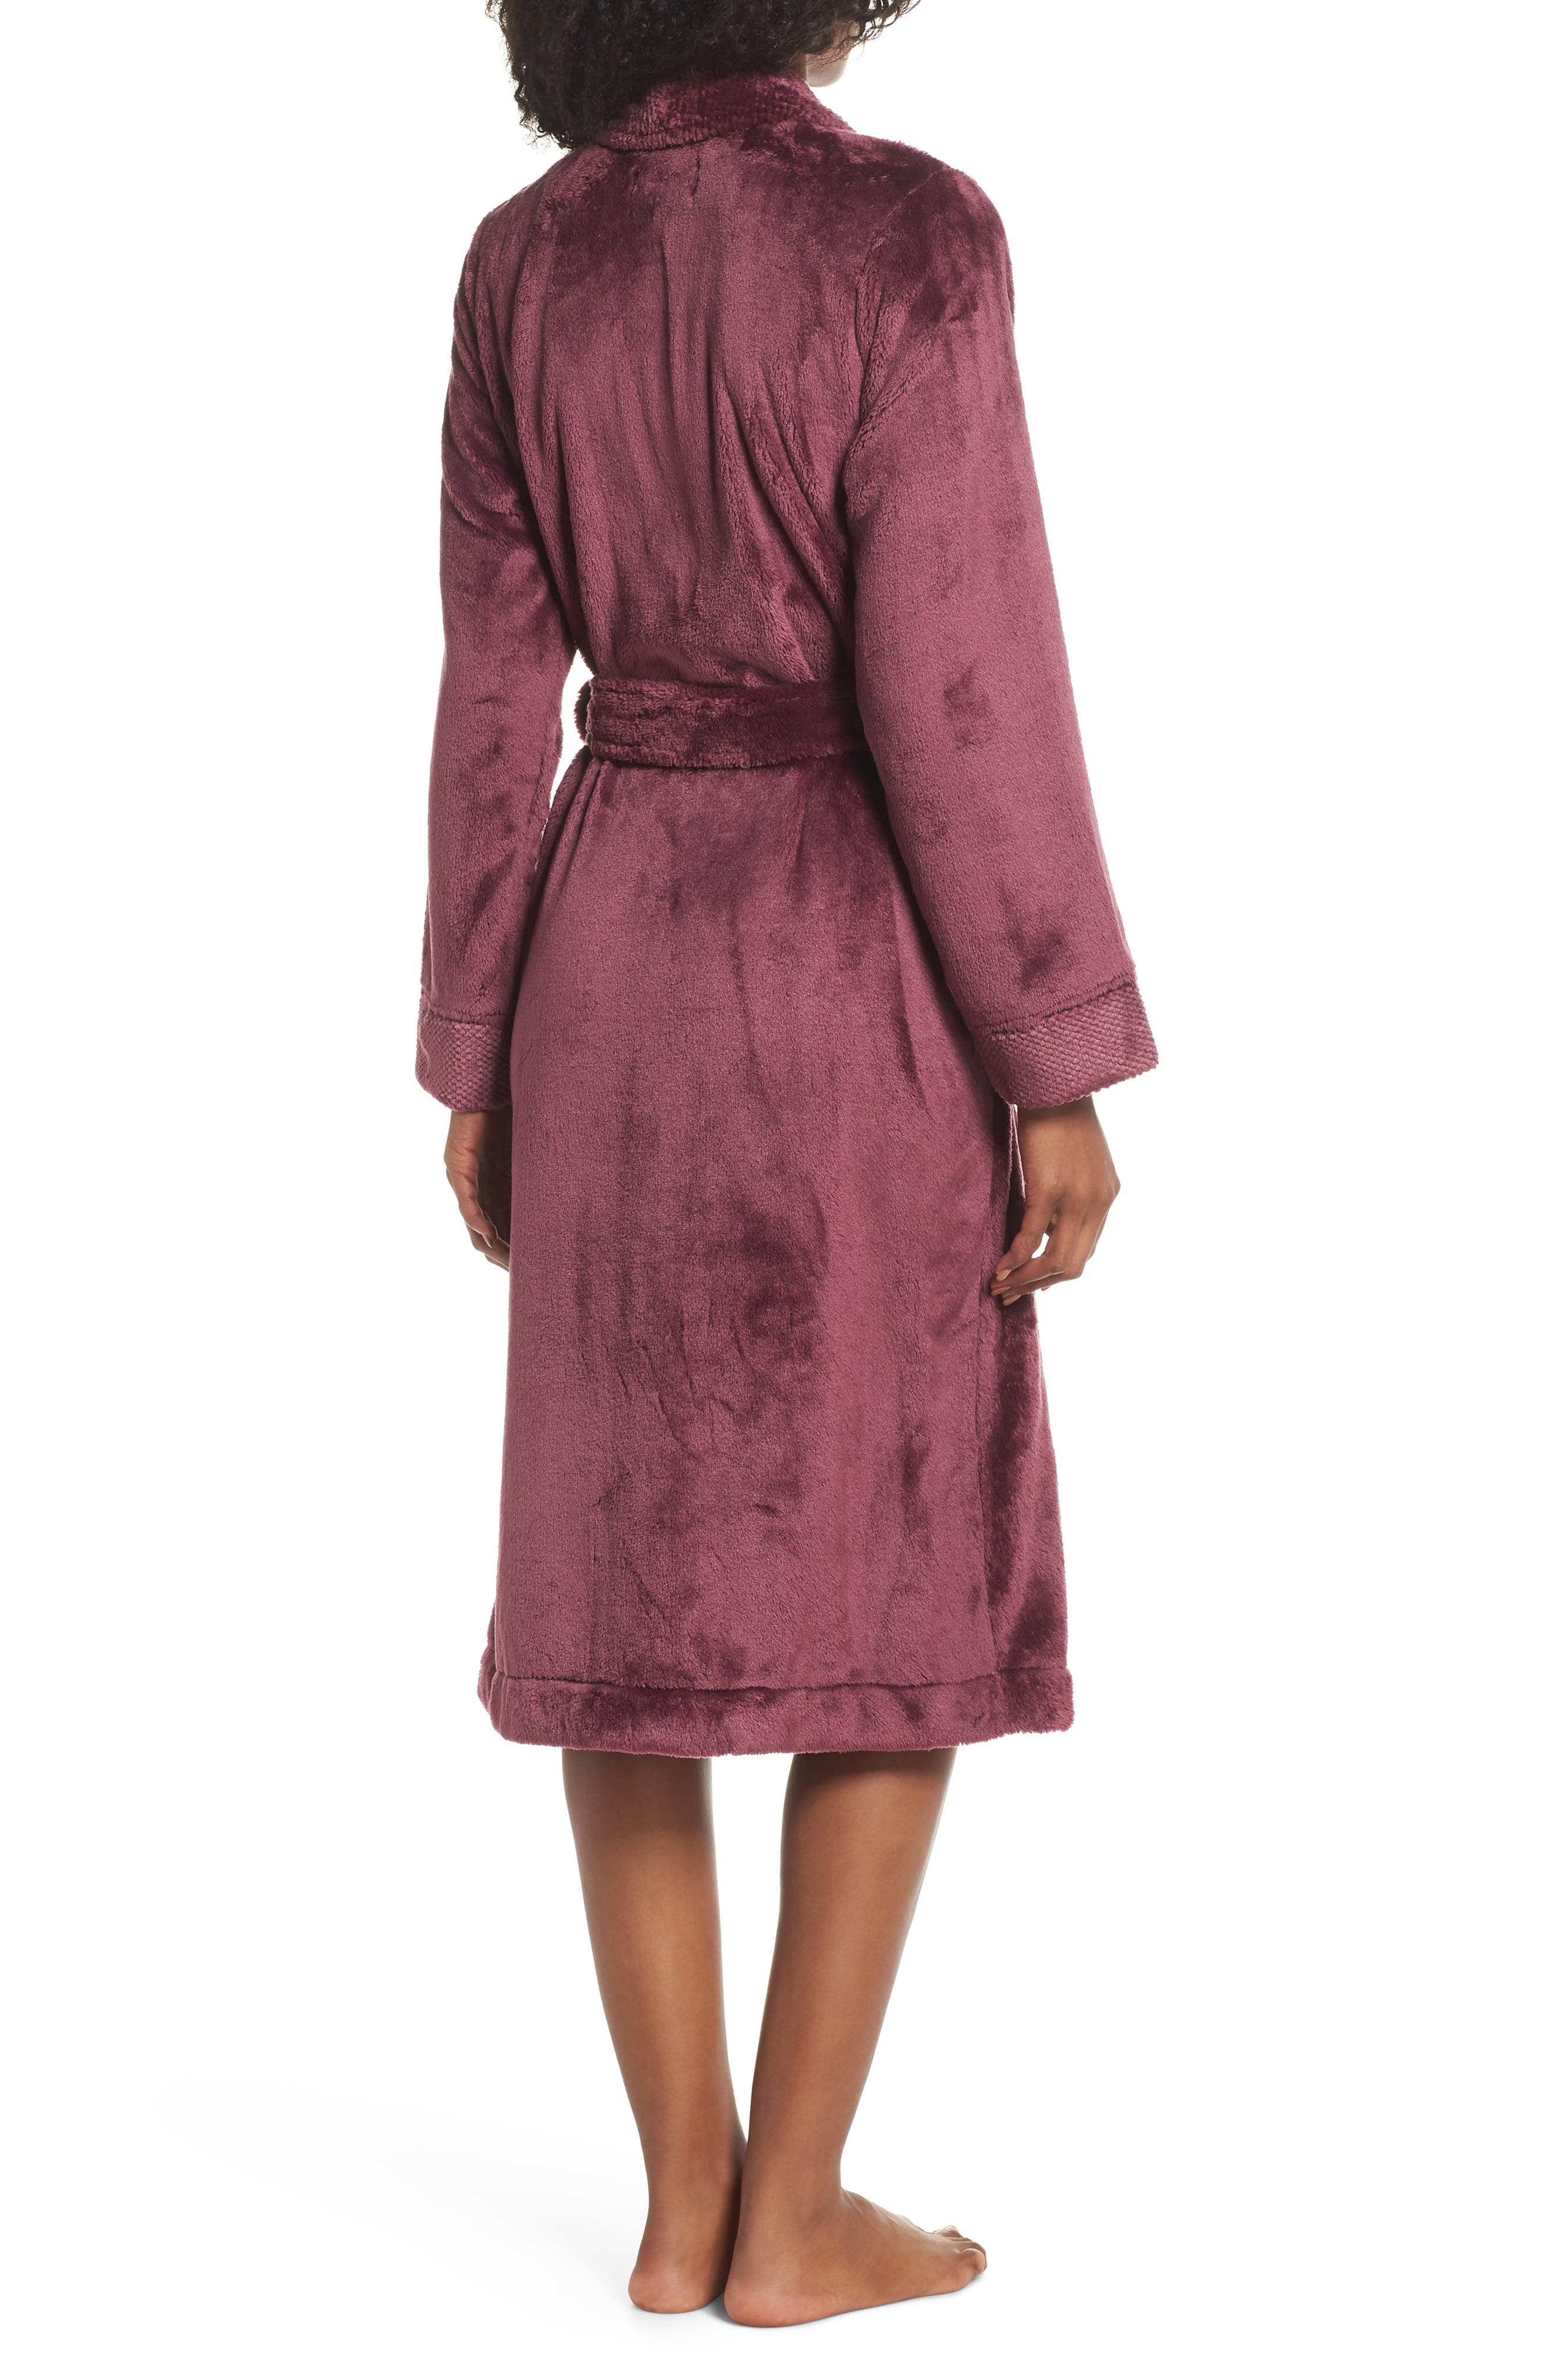 Nordstrom So Soft Plush Robe,                             Alternate thumbnail 2, color,                             PURPLE CRUSH